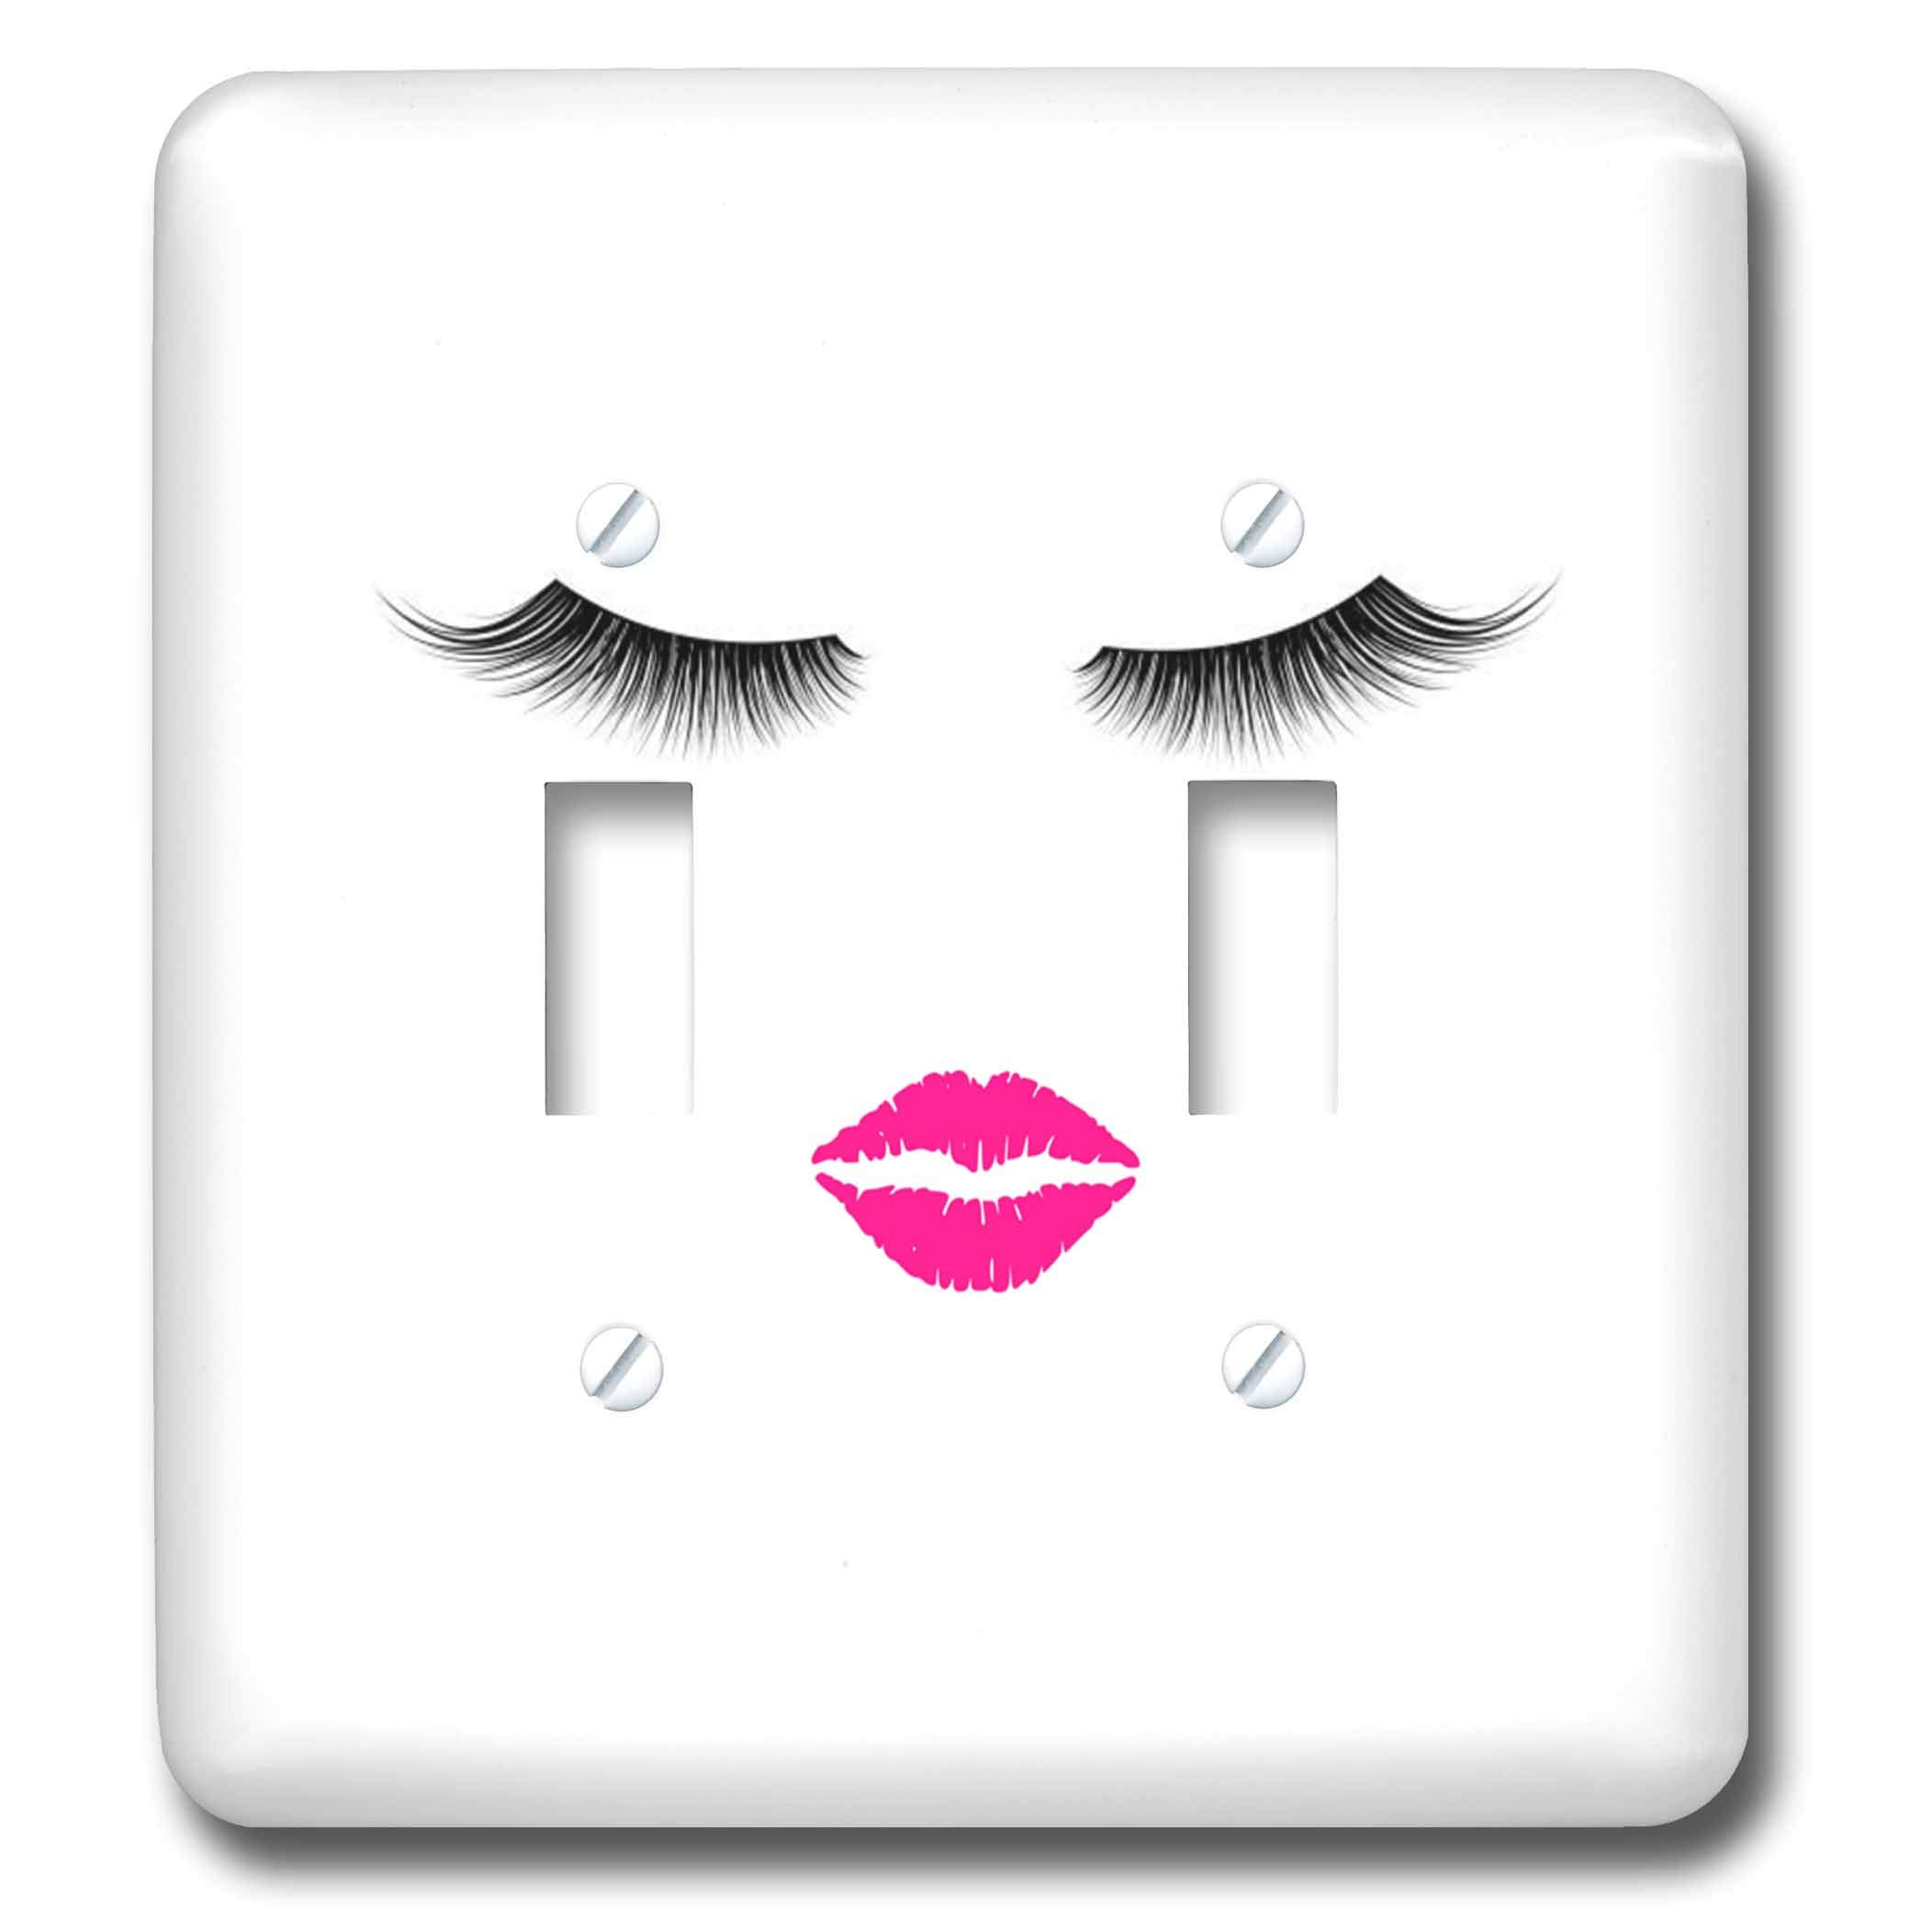 3dRose 3DRose Gabriella B - Face - Image of Eyelashes and Lips - Light Switch Covers - double toggle switch (lsp_291208_2)